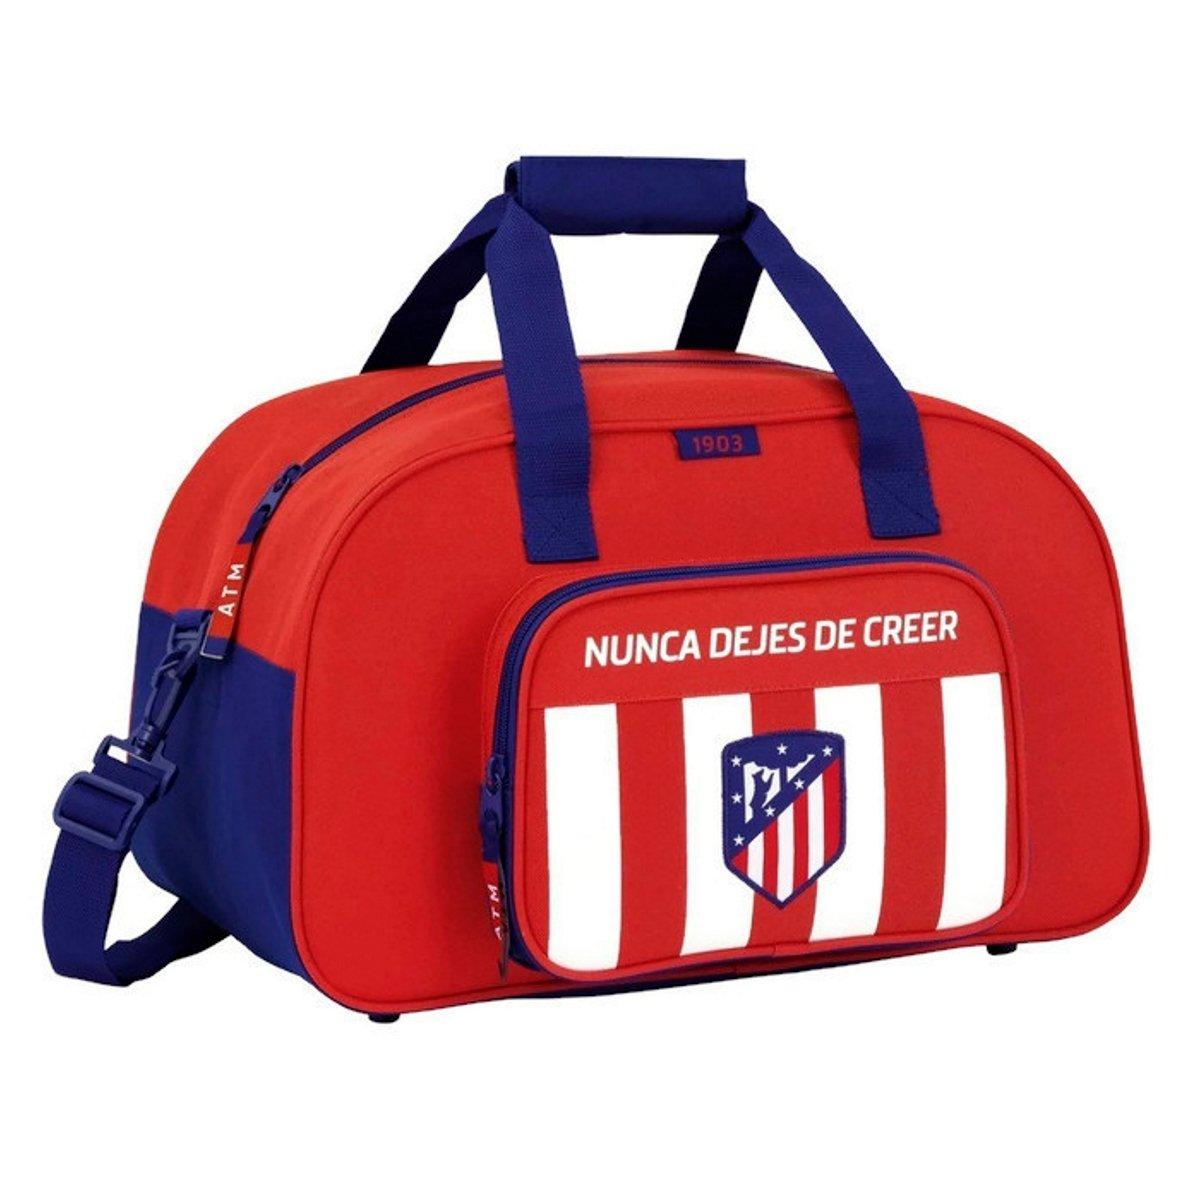 officiel Atl/ético De Madrid Sac de sport